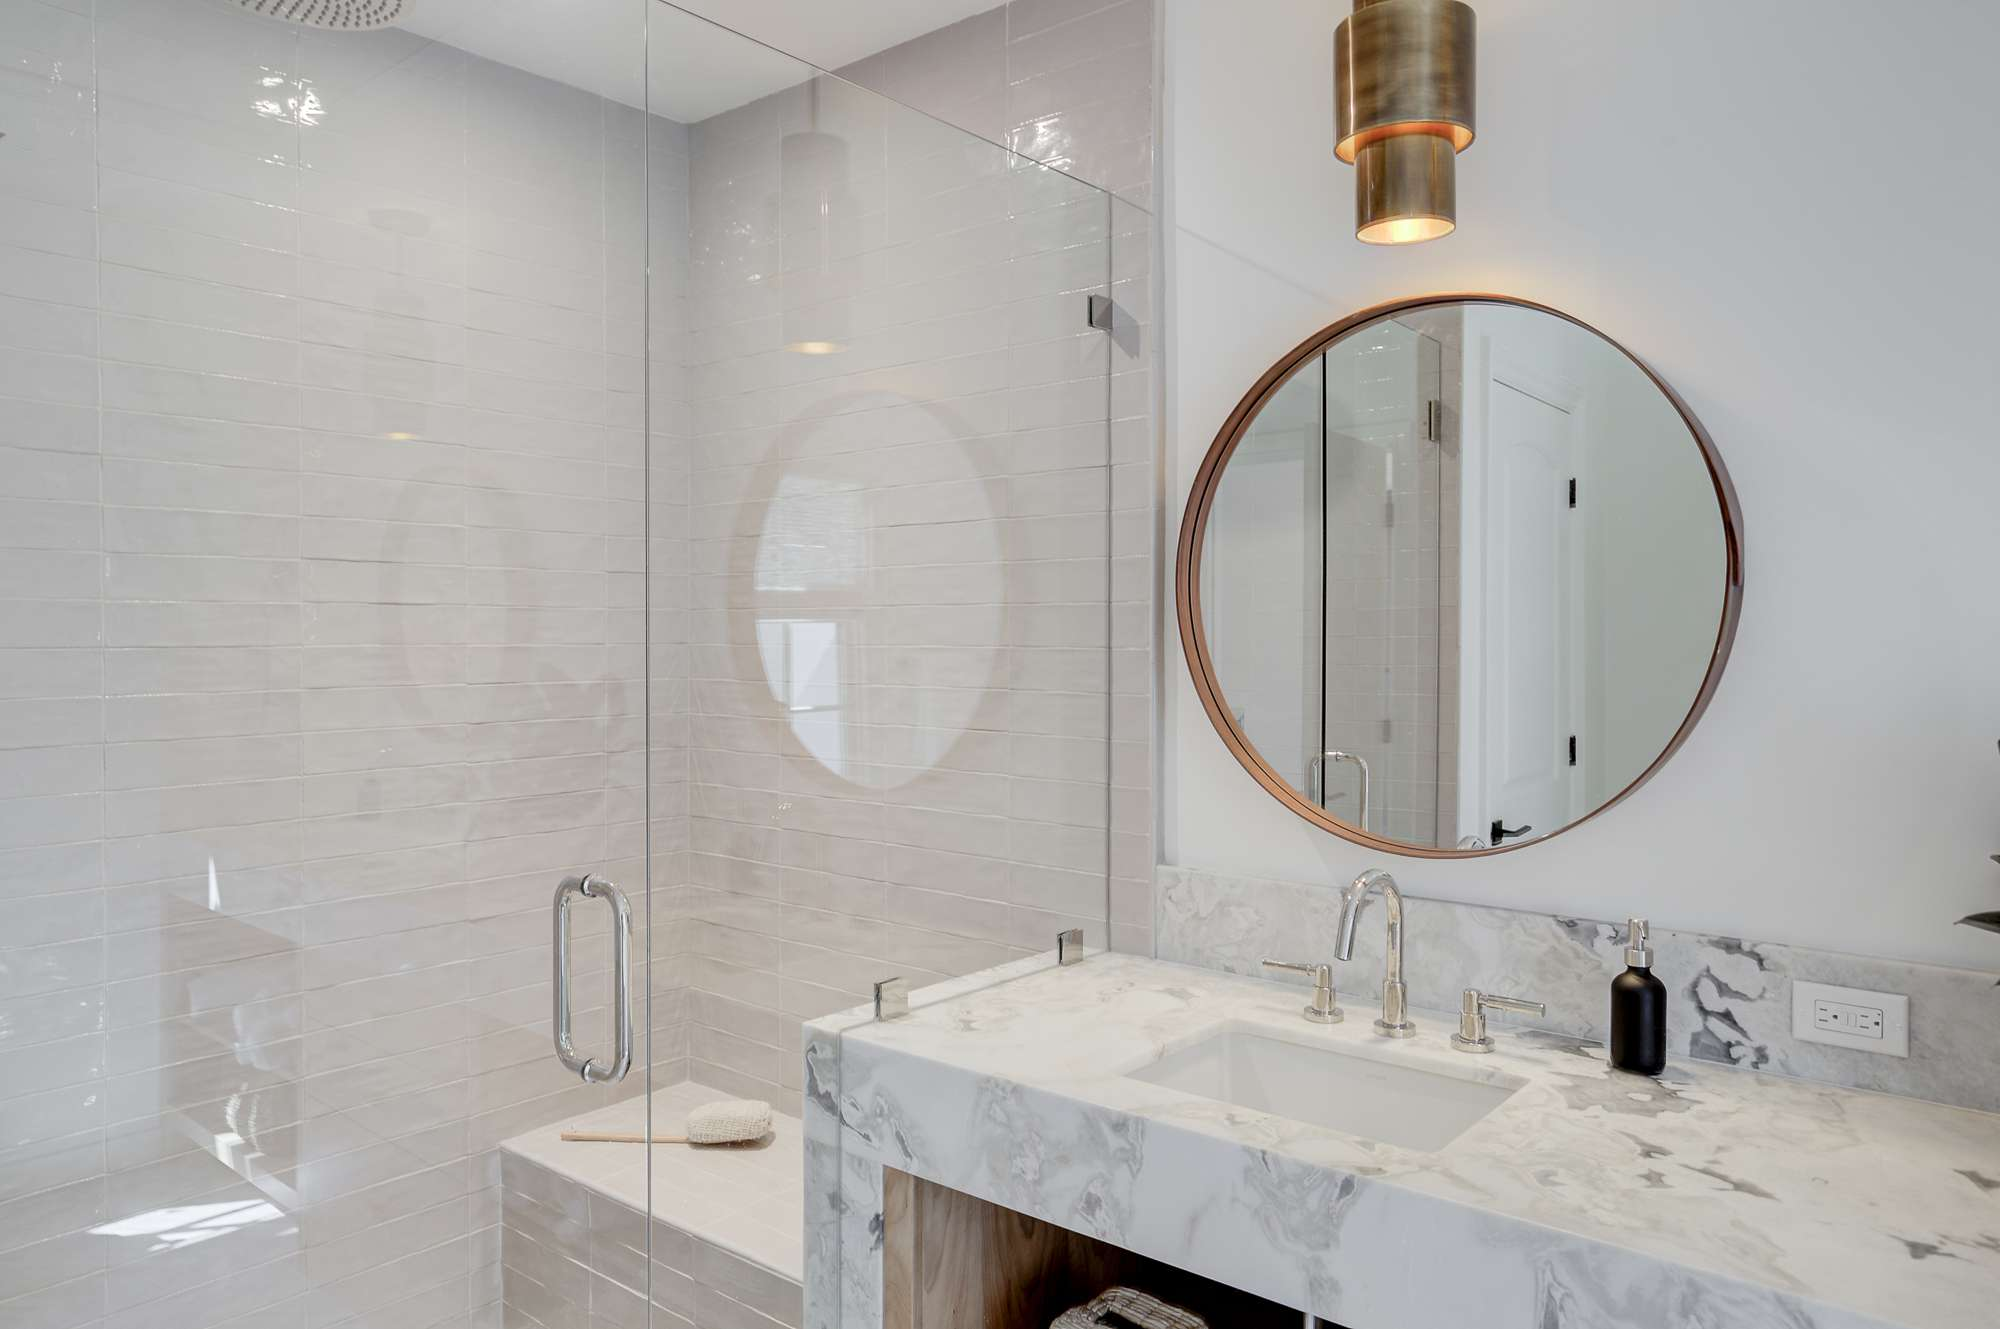 Vanity with marble countertop and glass shower stall.